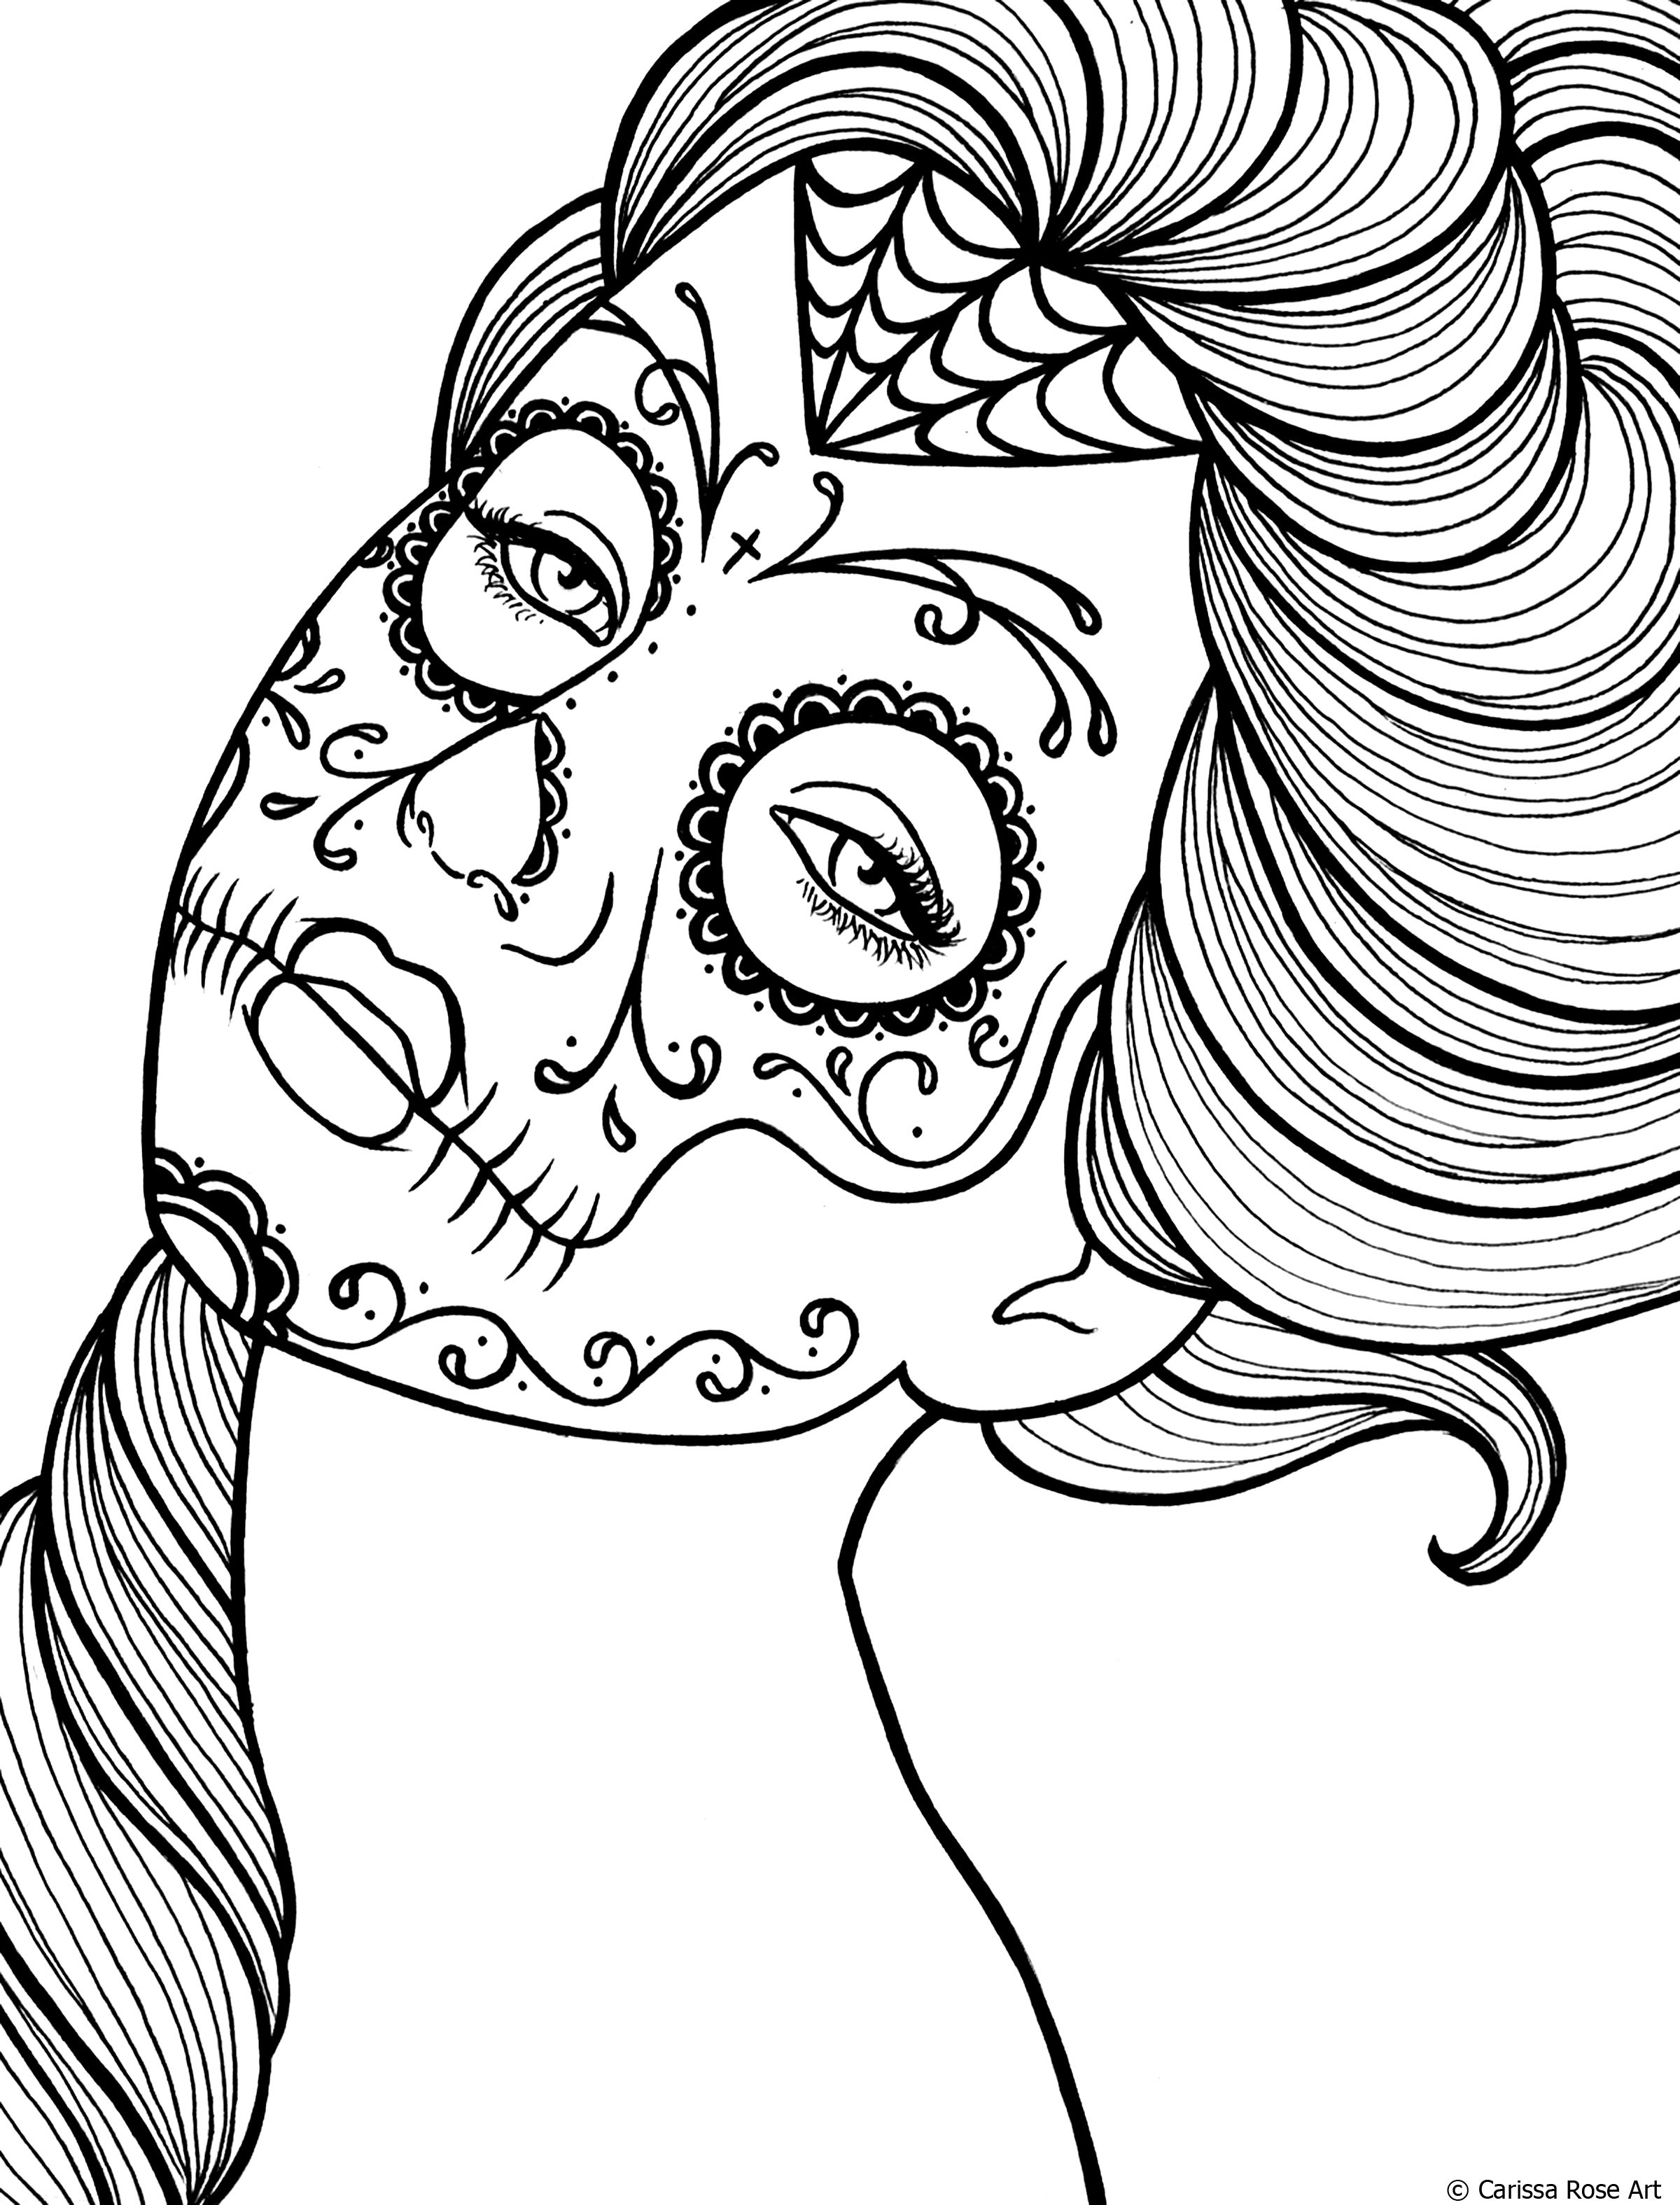 Free Printable Day Of The Dead Coloring Book Page By - coloring pages of girly things